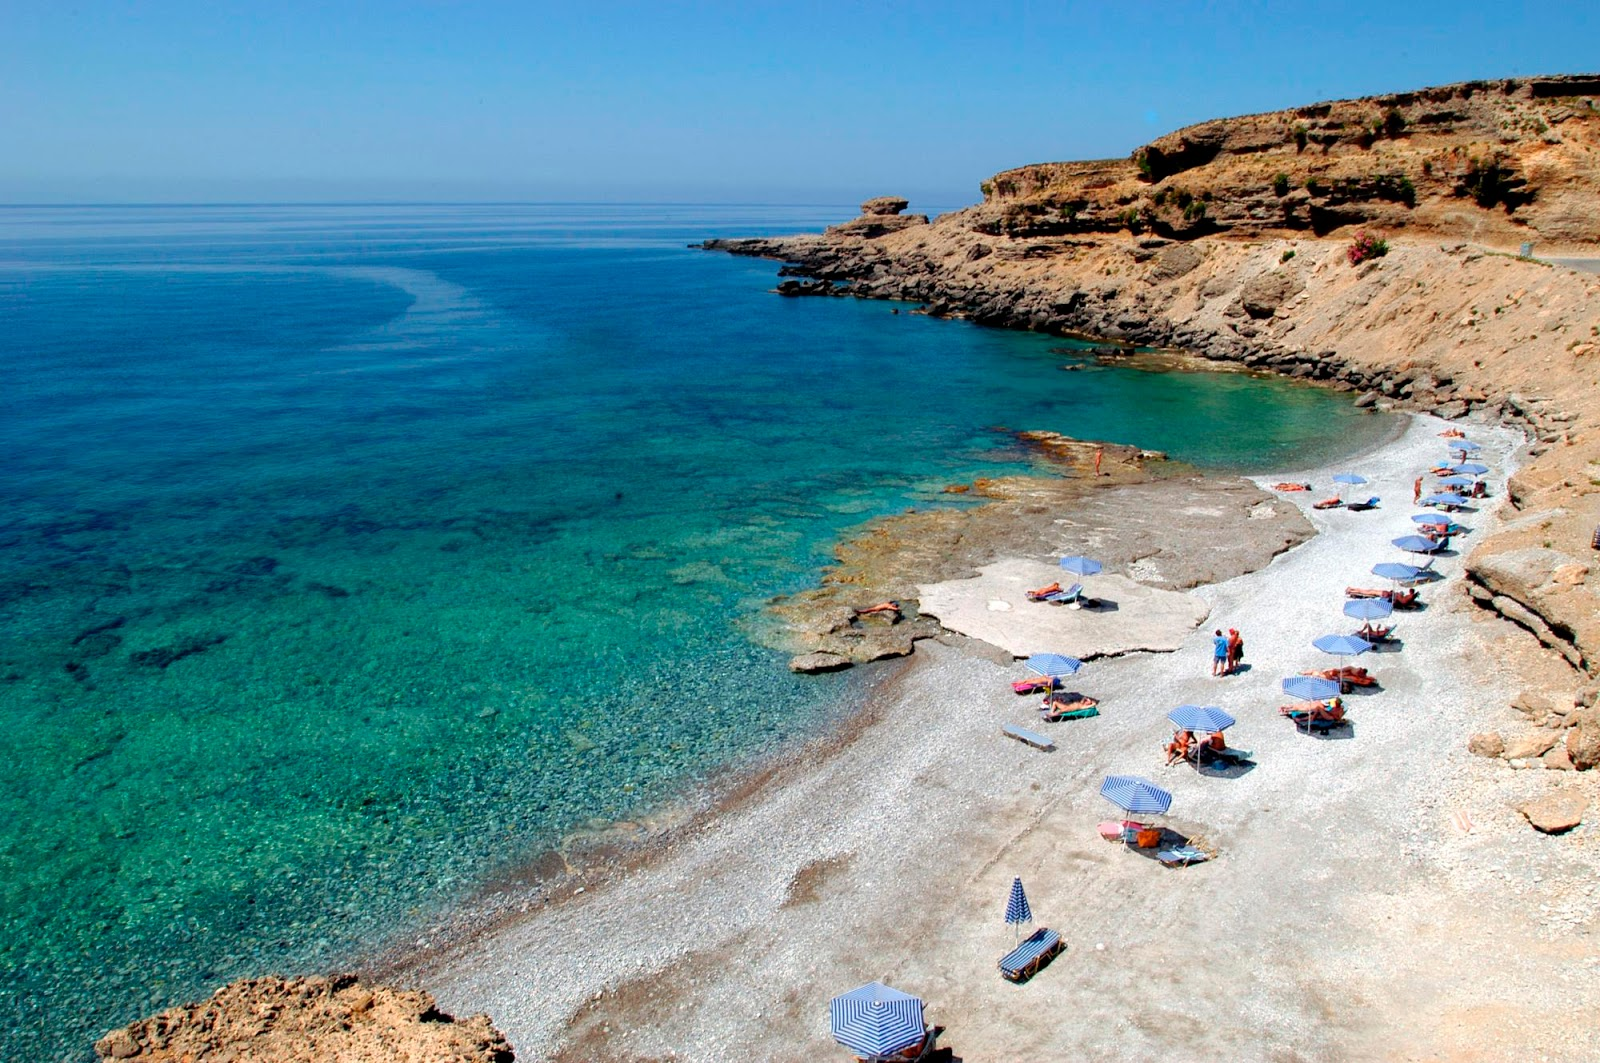 Filaki beach at Vitromartis Naturist Resort (Crete, Greece)